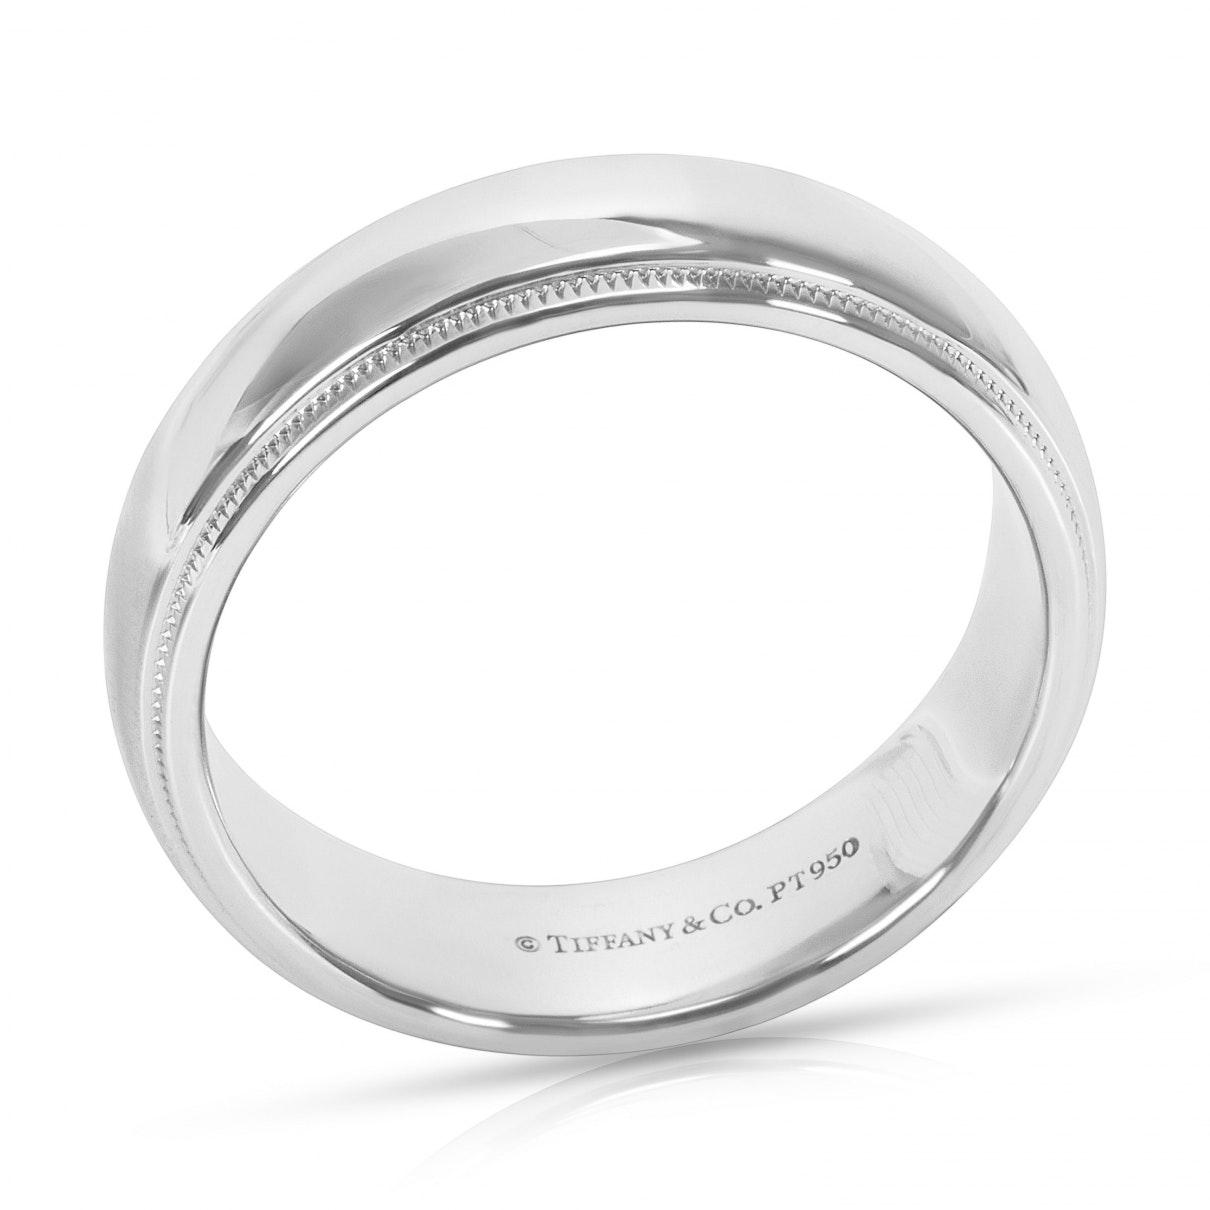 Tiffany & Co. Other Platinum in Metallic